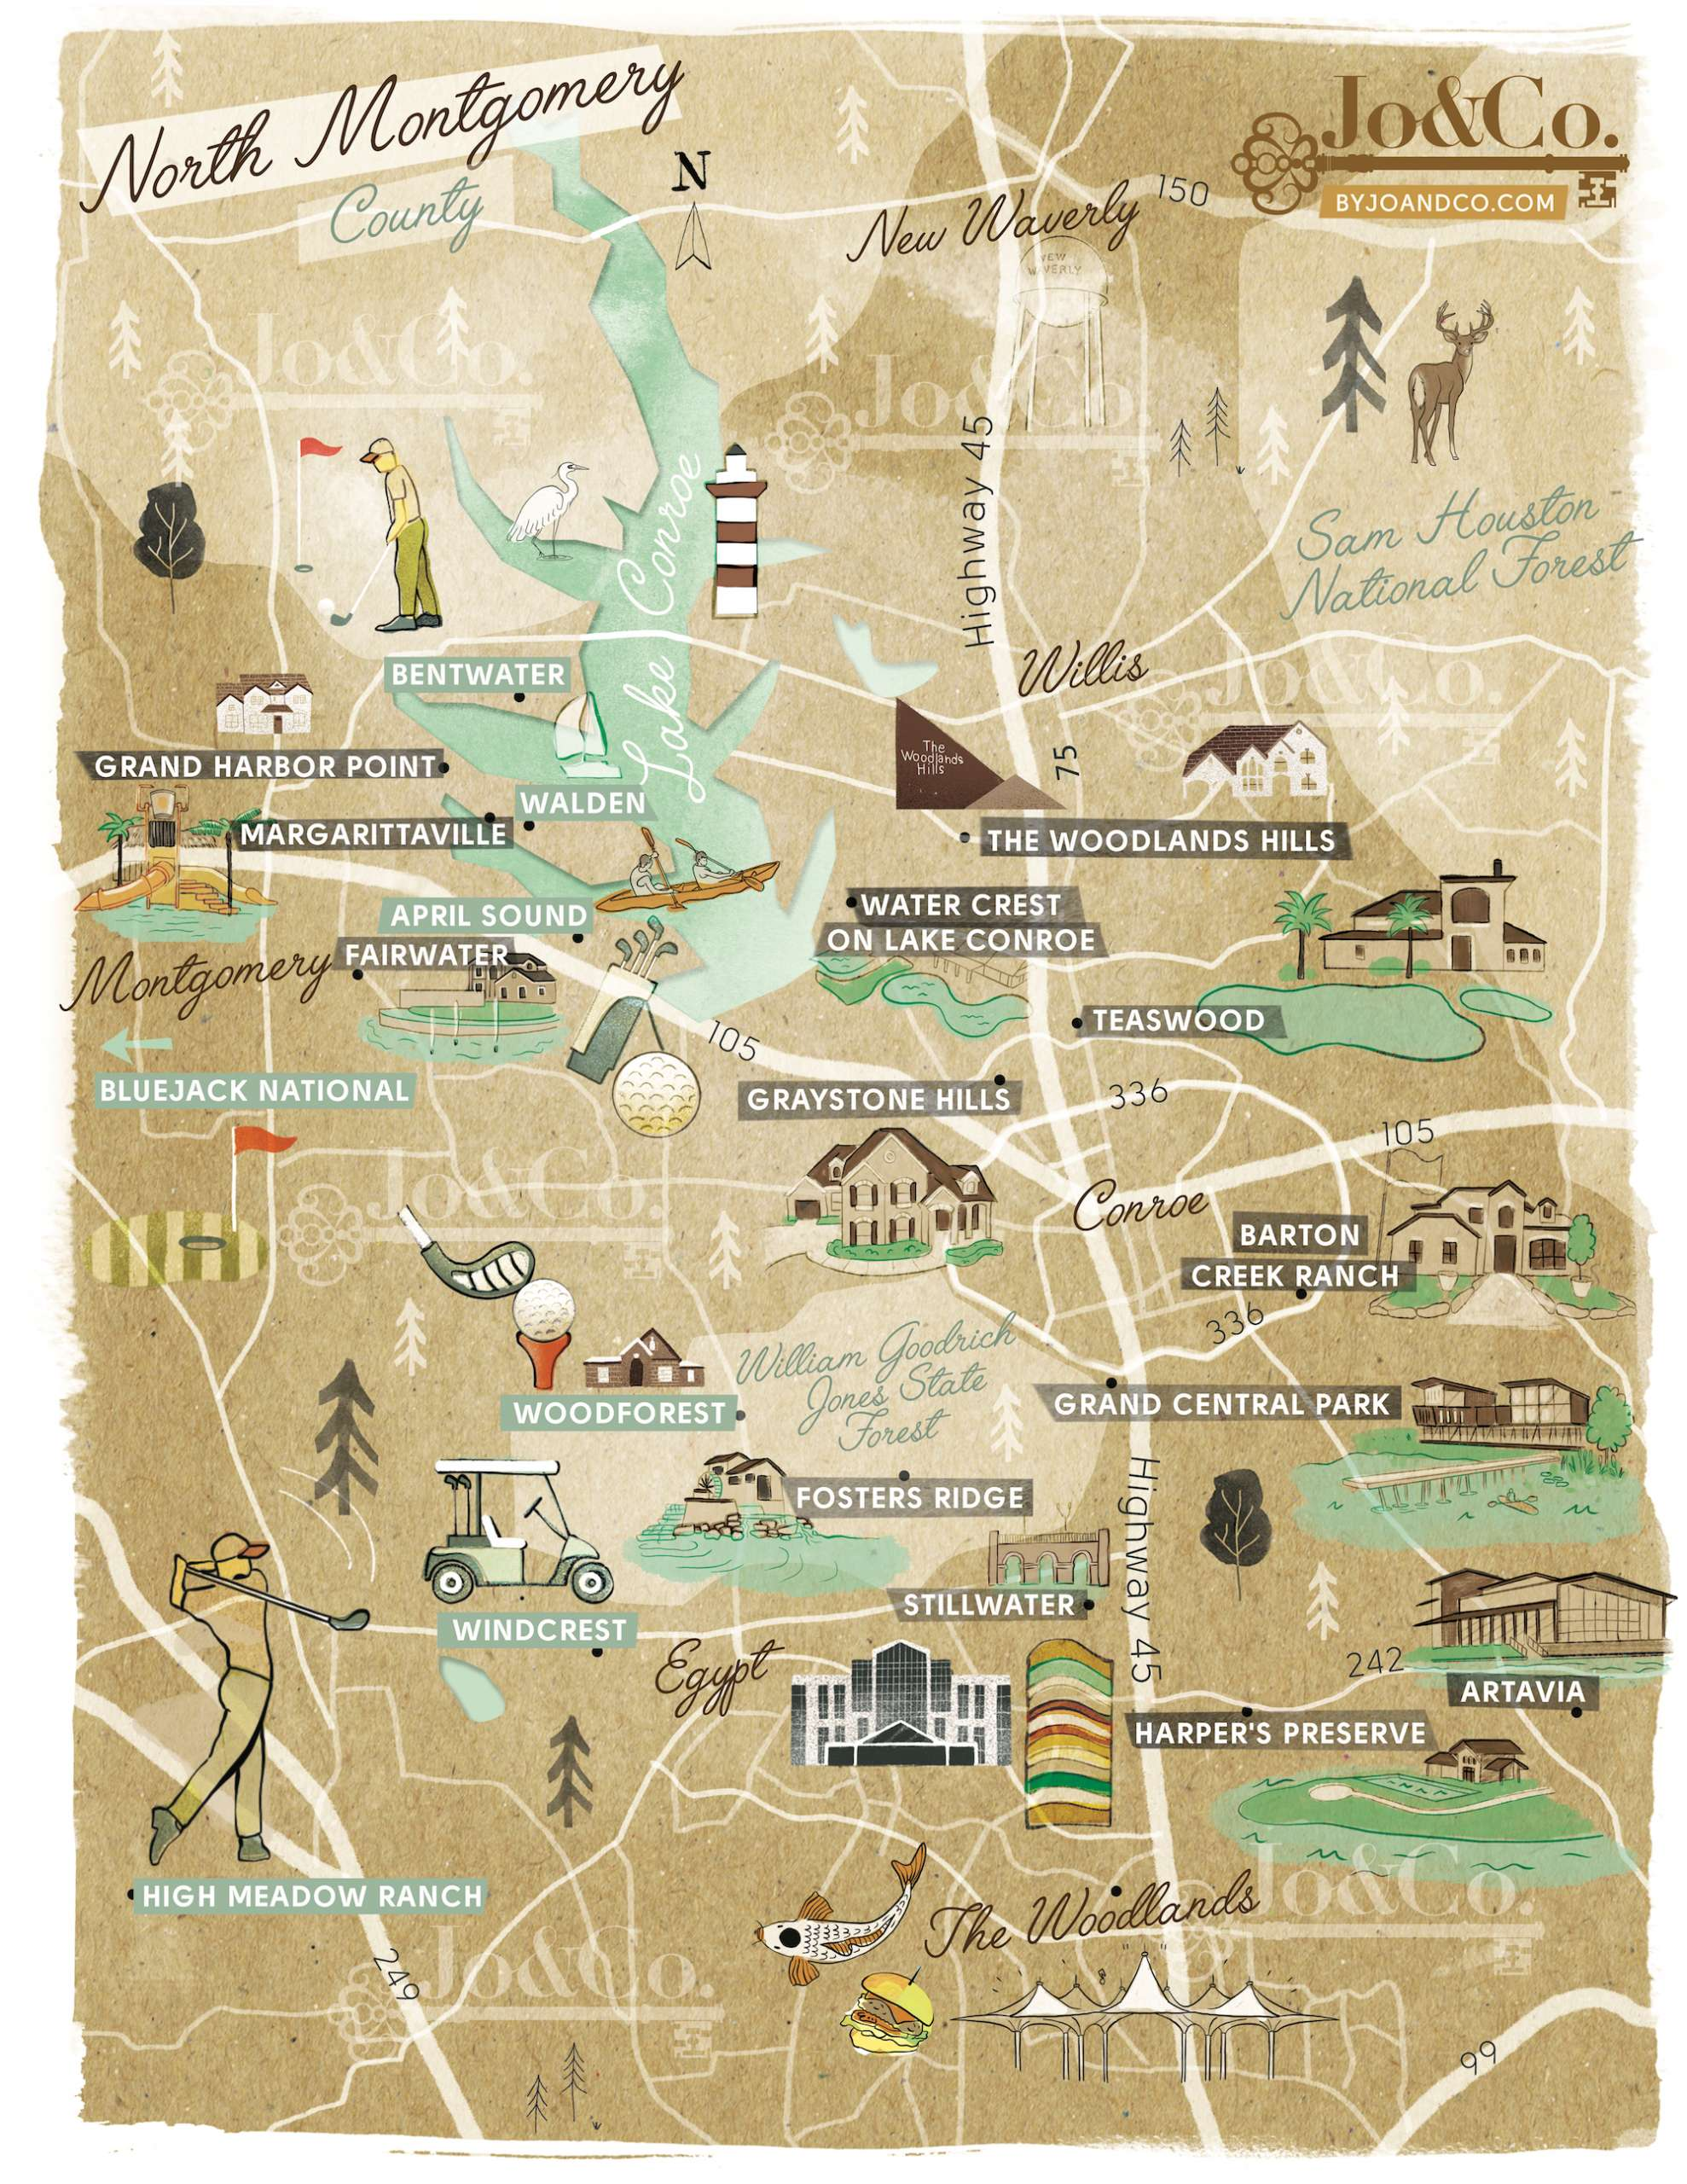 jo and co maps - north montgomery county - watermarked smaller